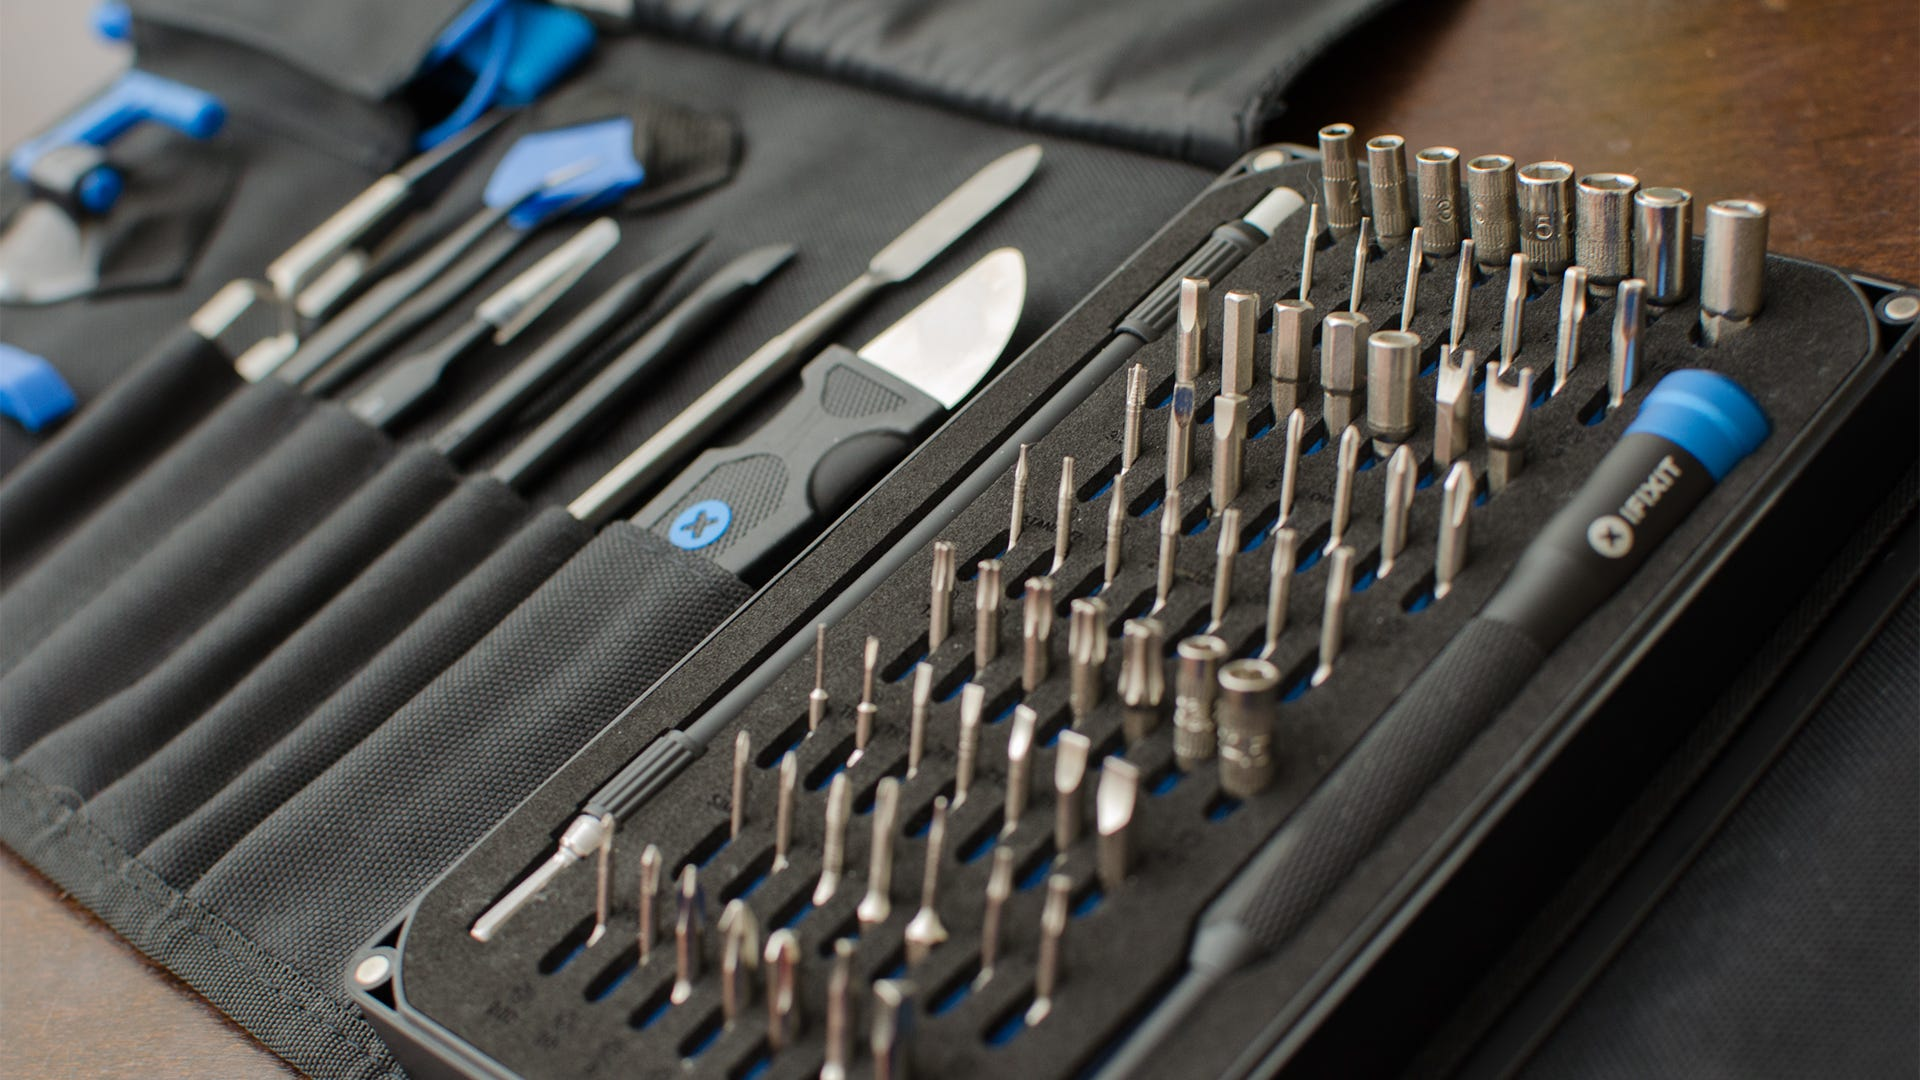 iFixit Pro Tech Toolkit Review: The Last Gadget Repair Kit You'll Ever Need